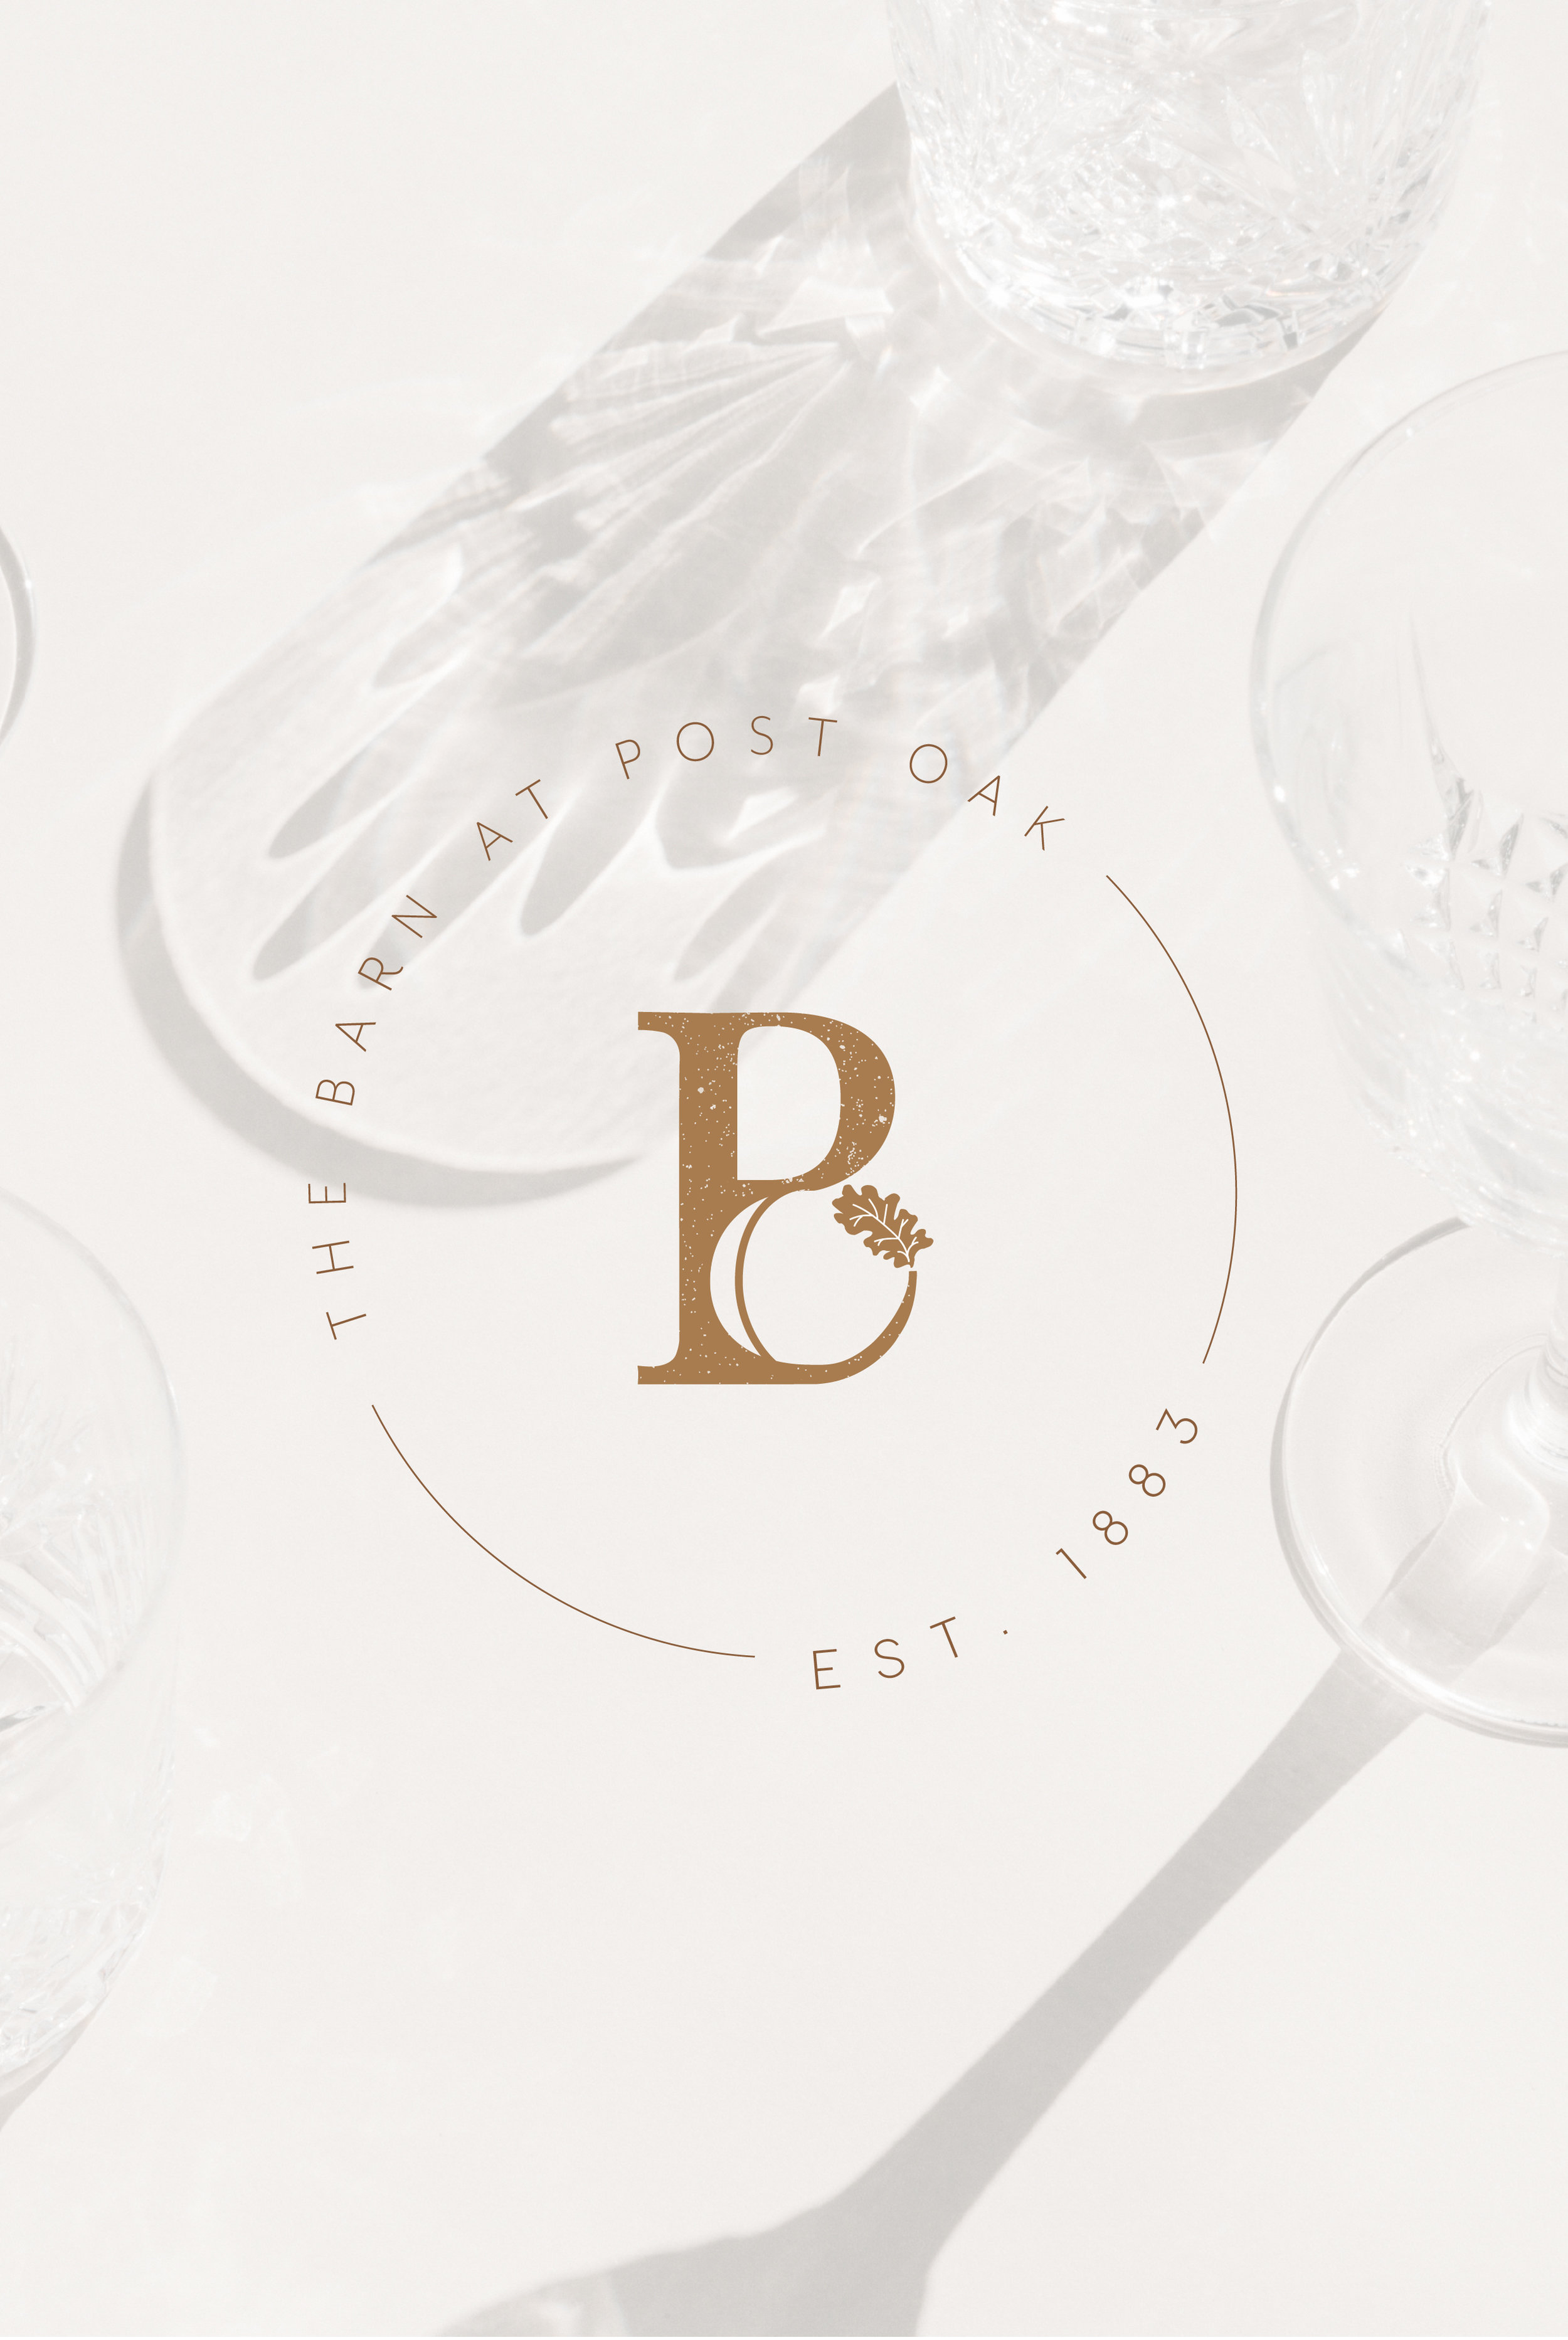 - THE BARN AT POST OAKvisual branding, package sourcing, label design